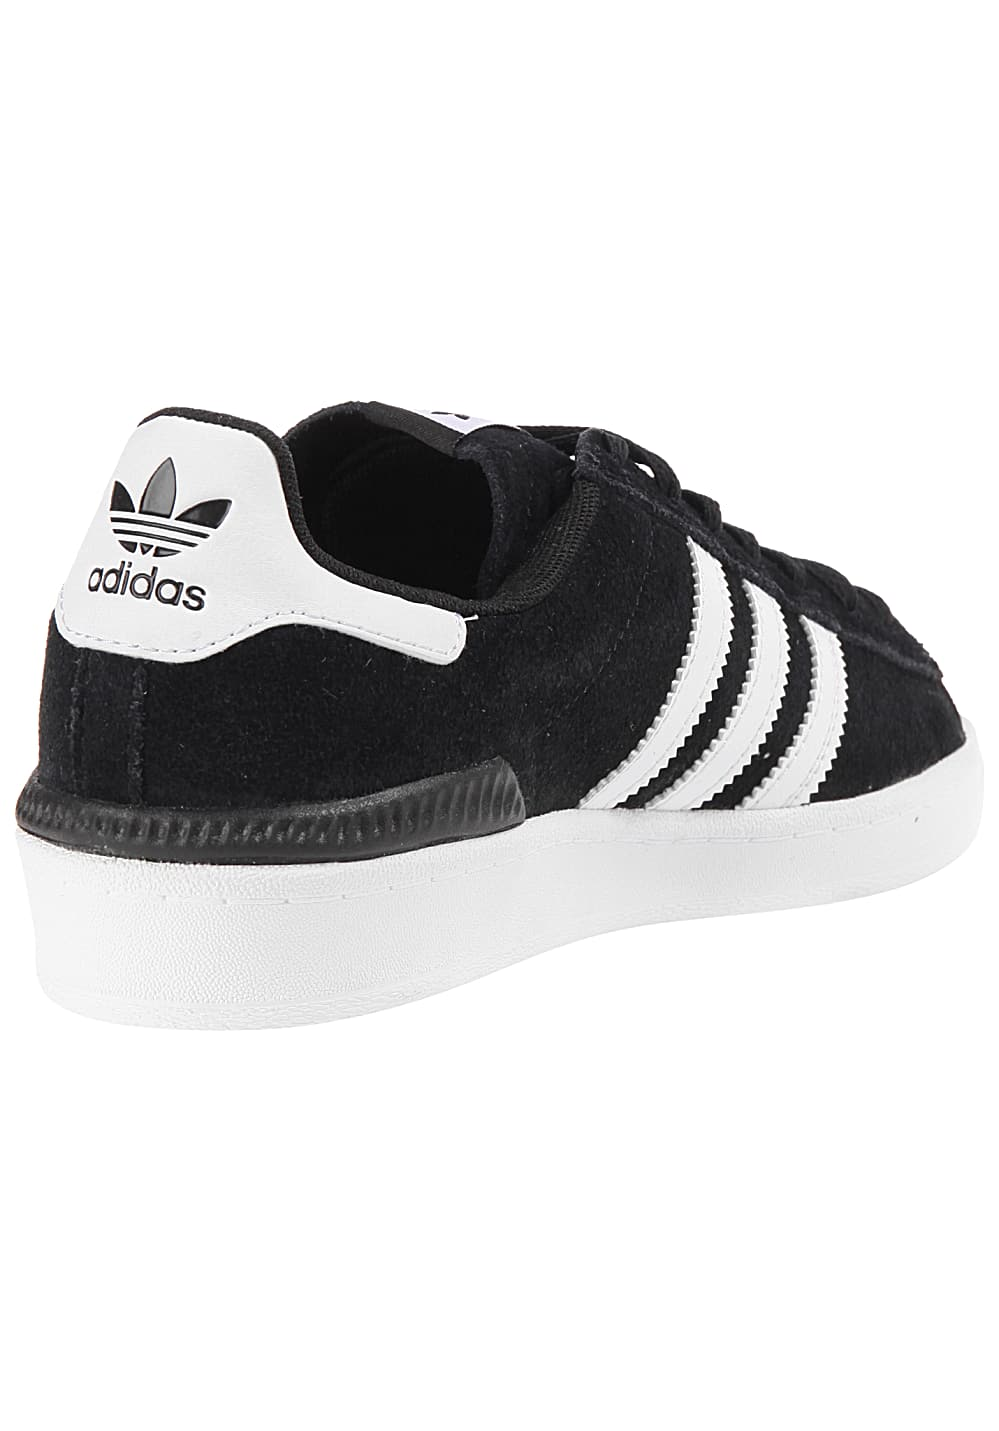 Adidas Skateboarding Campus Advantage - Sneakers for Men - Black